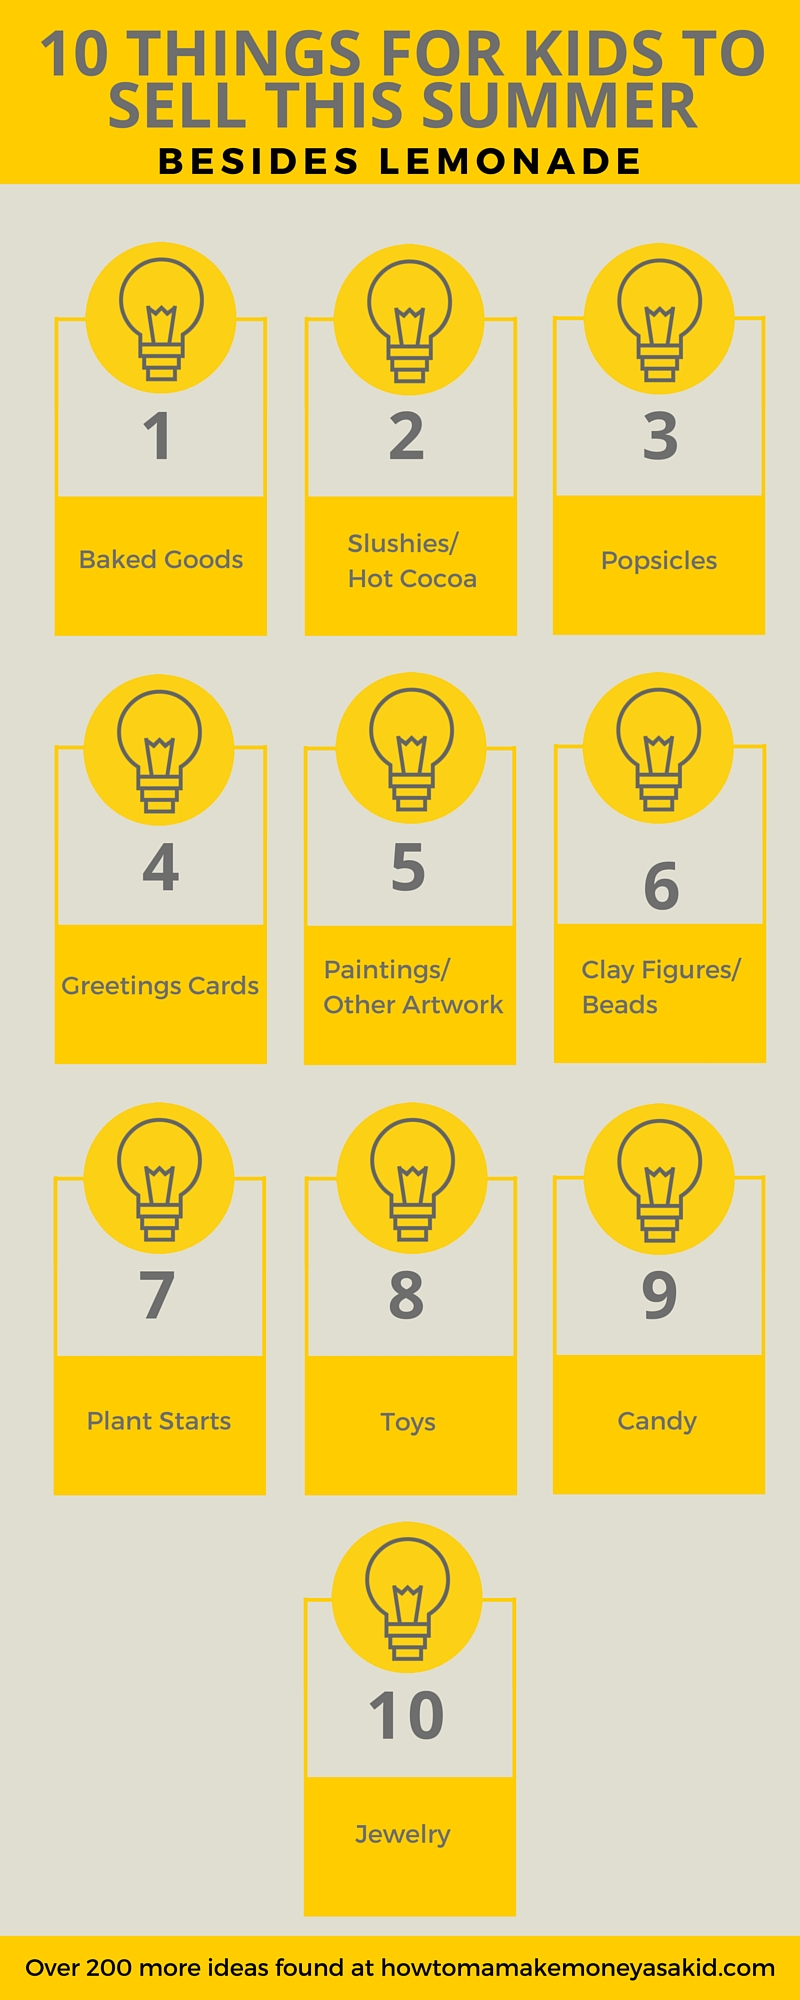 10 things to sell besides lemonade howtomakemoneyasakid com for Stuff to sell online ideas